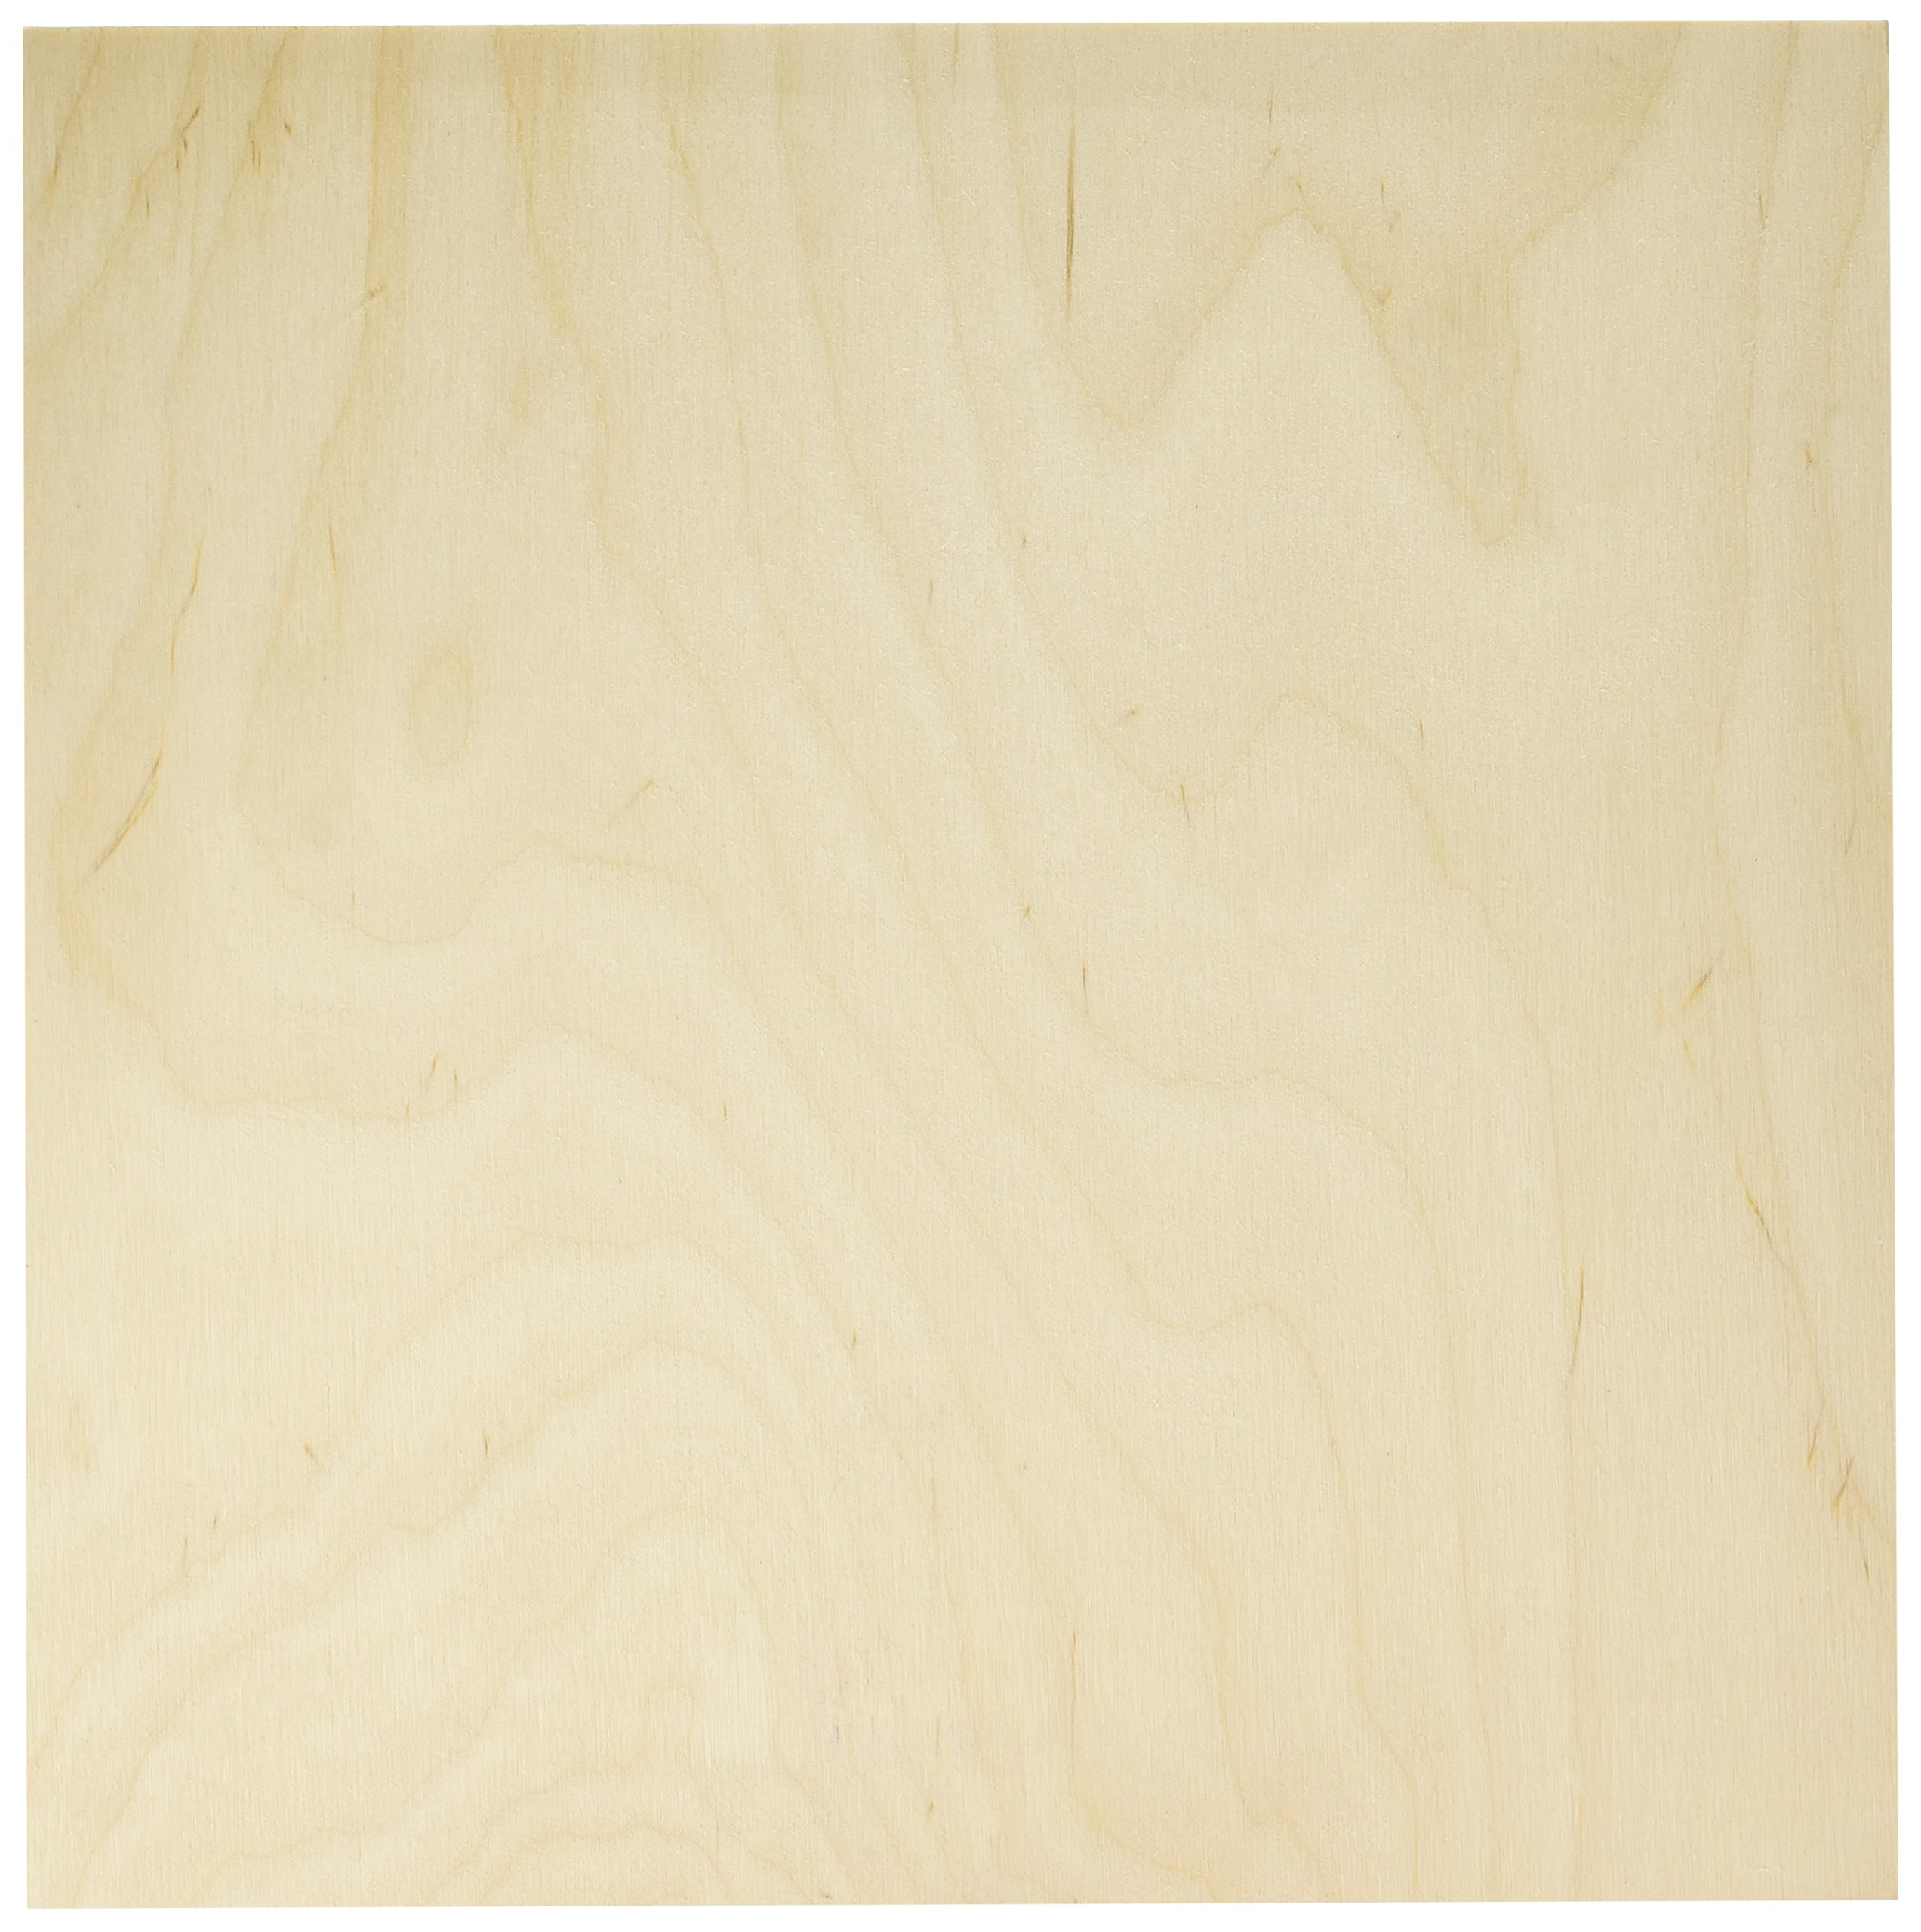 Midwest Products Co. 5335 Plywood, 1 by Midwest Products Co.